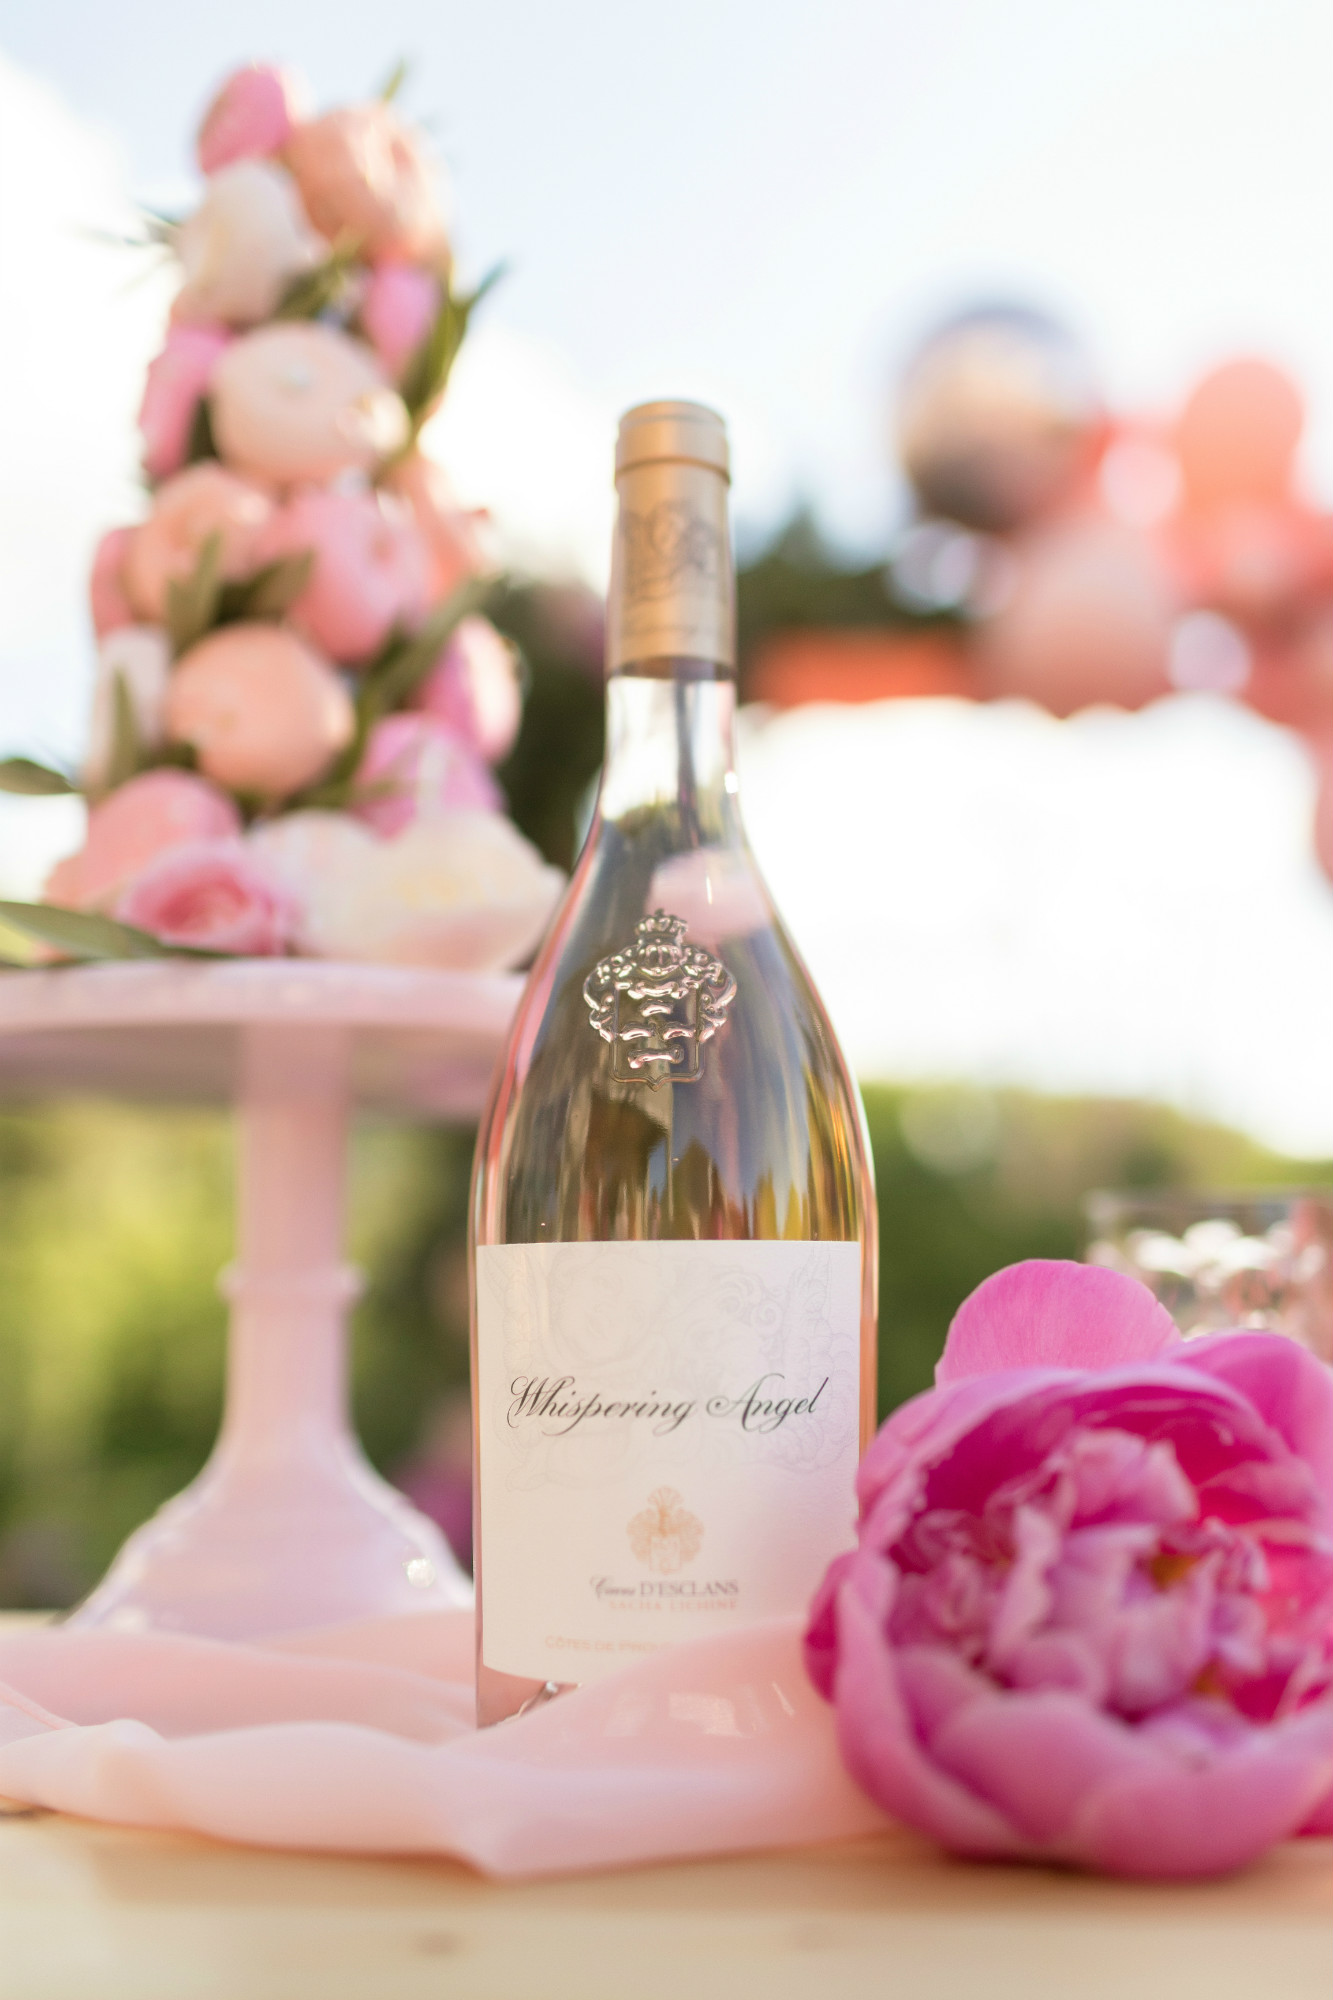 Whispering Angel Rose from One Stylish Party's Rose All Day Dinner Party | Black Twine